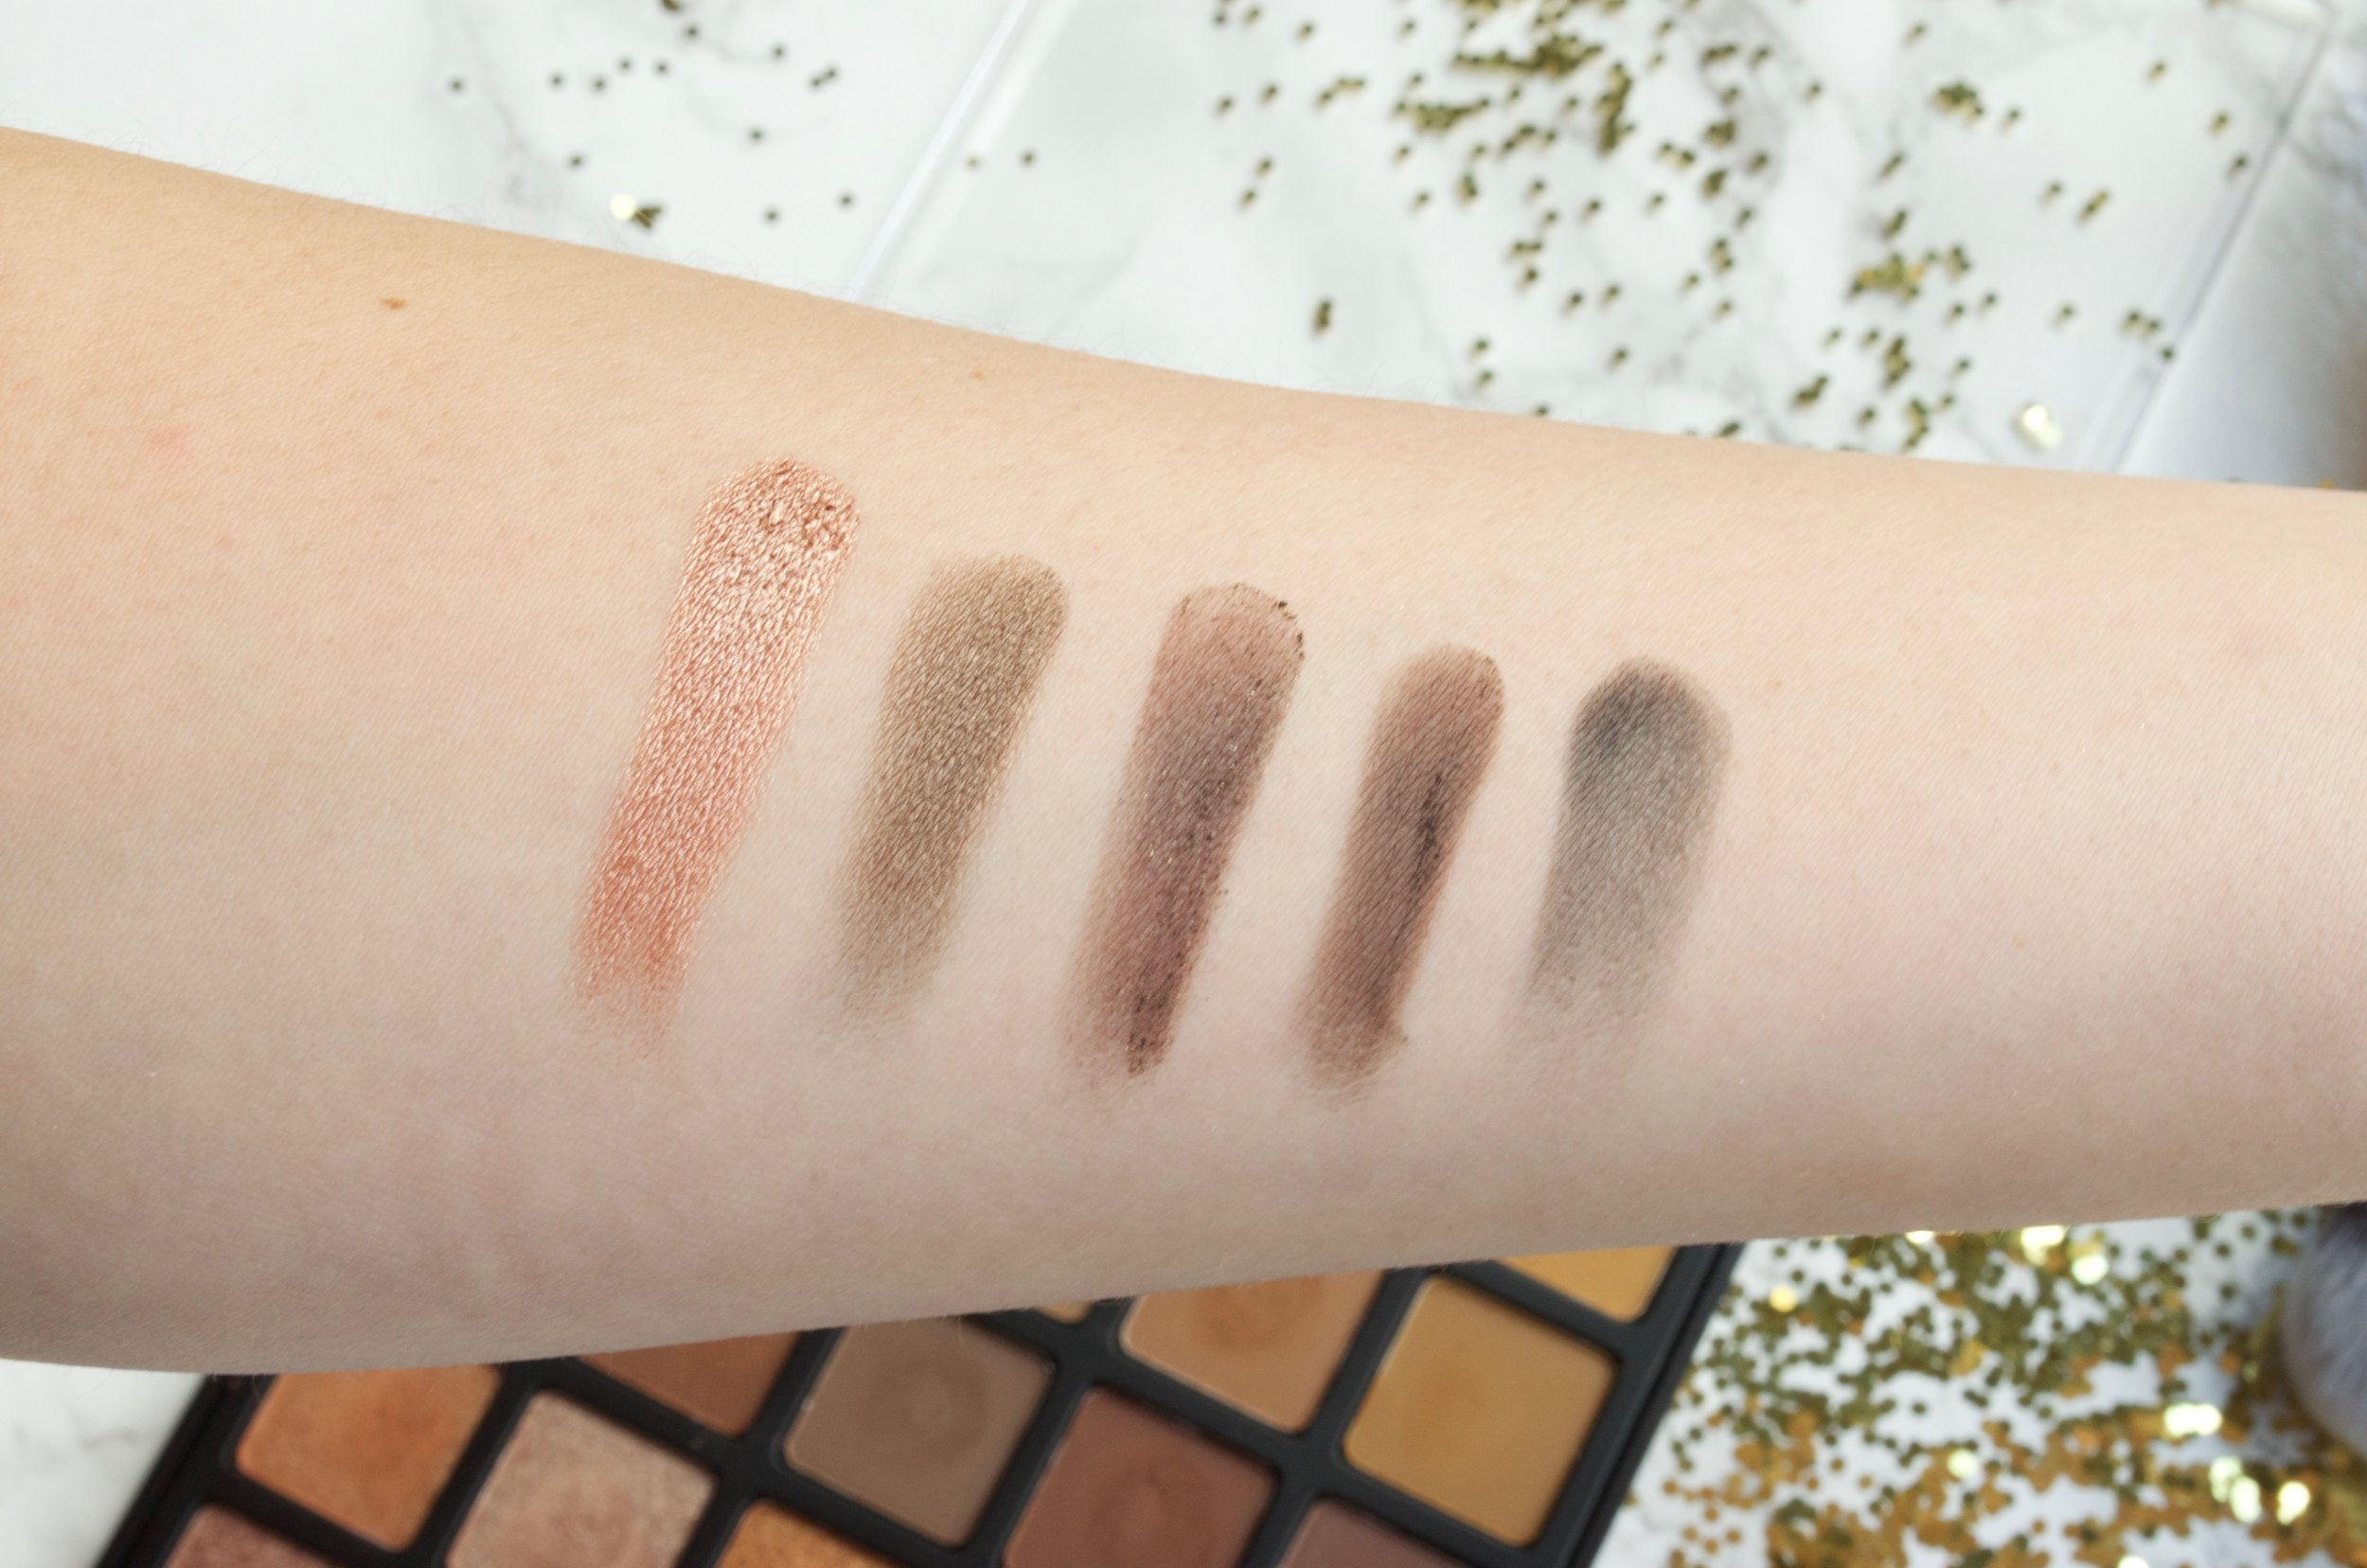 Morphe Spiced Copper Palette Swatches